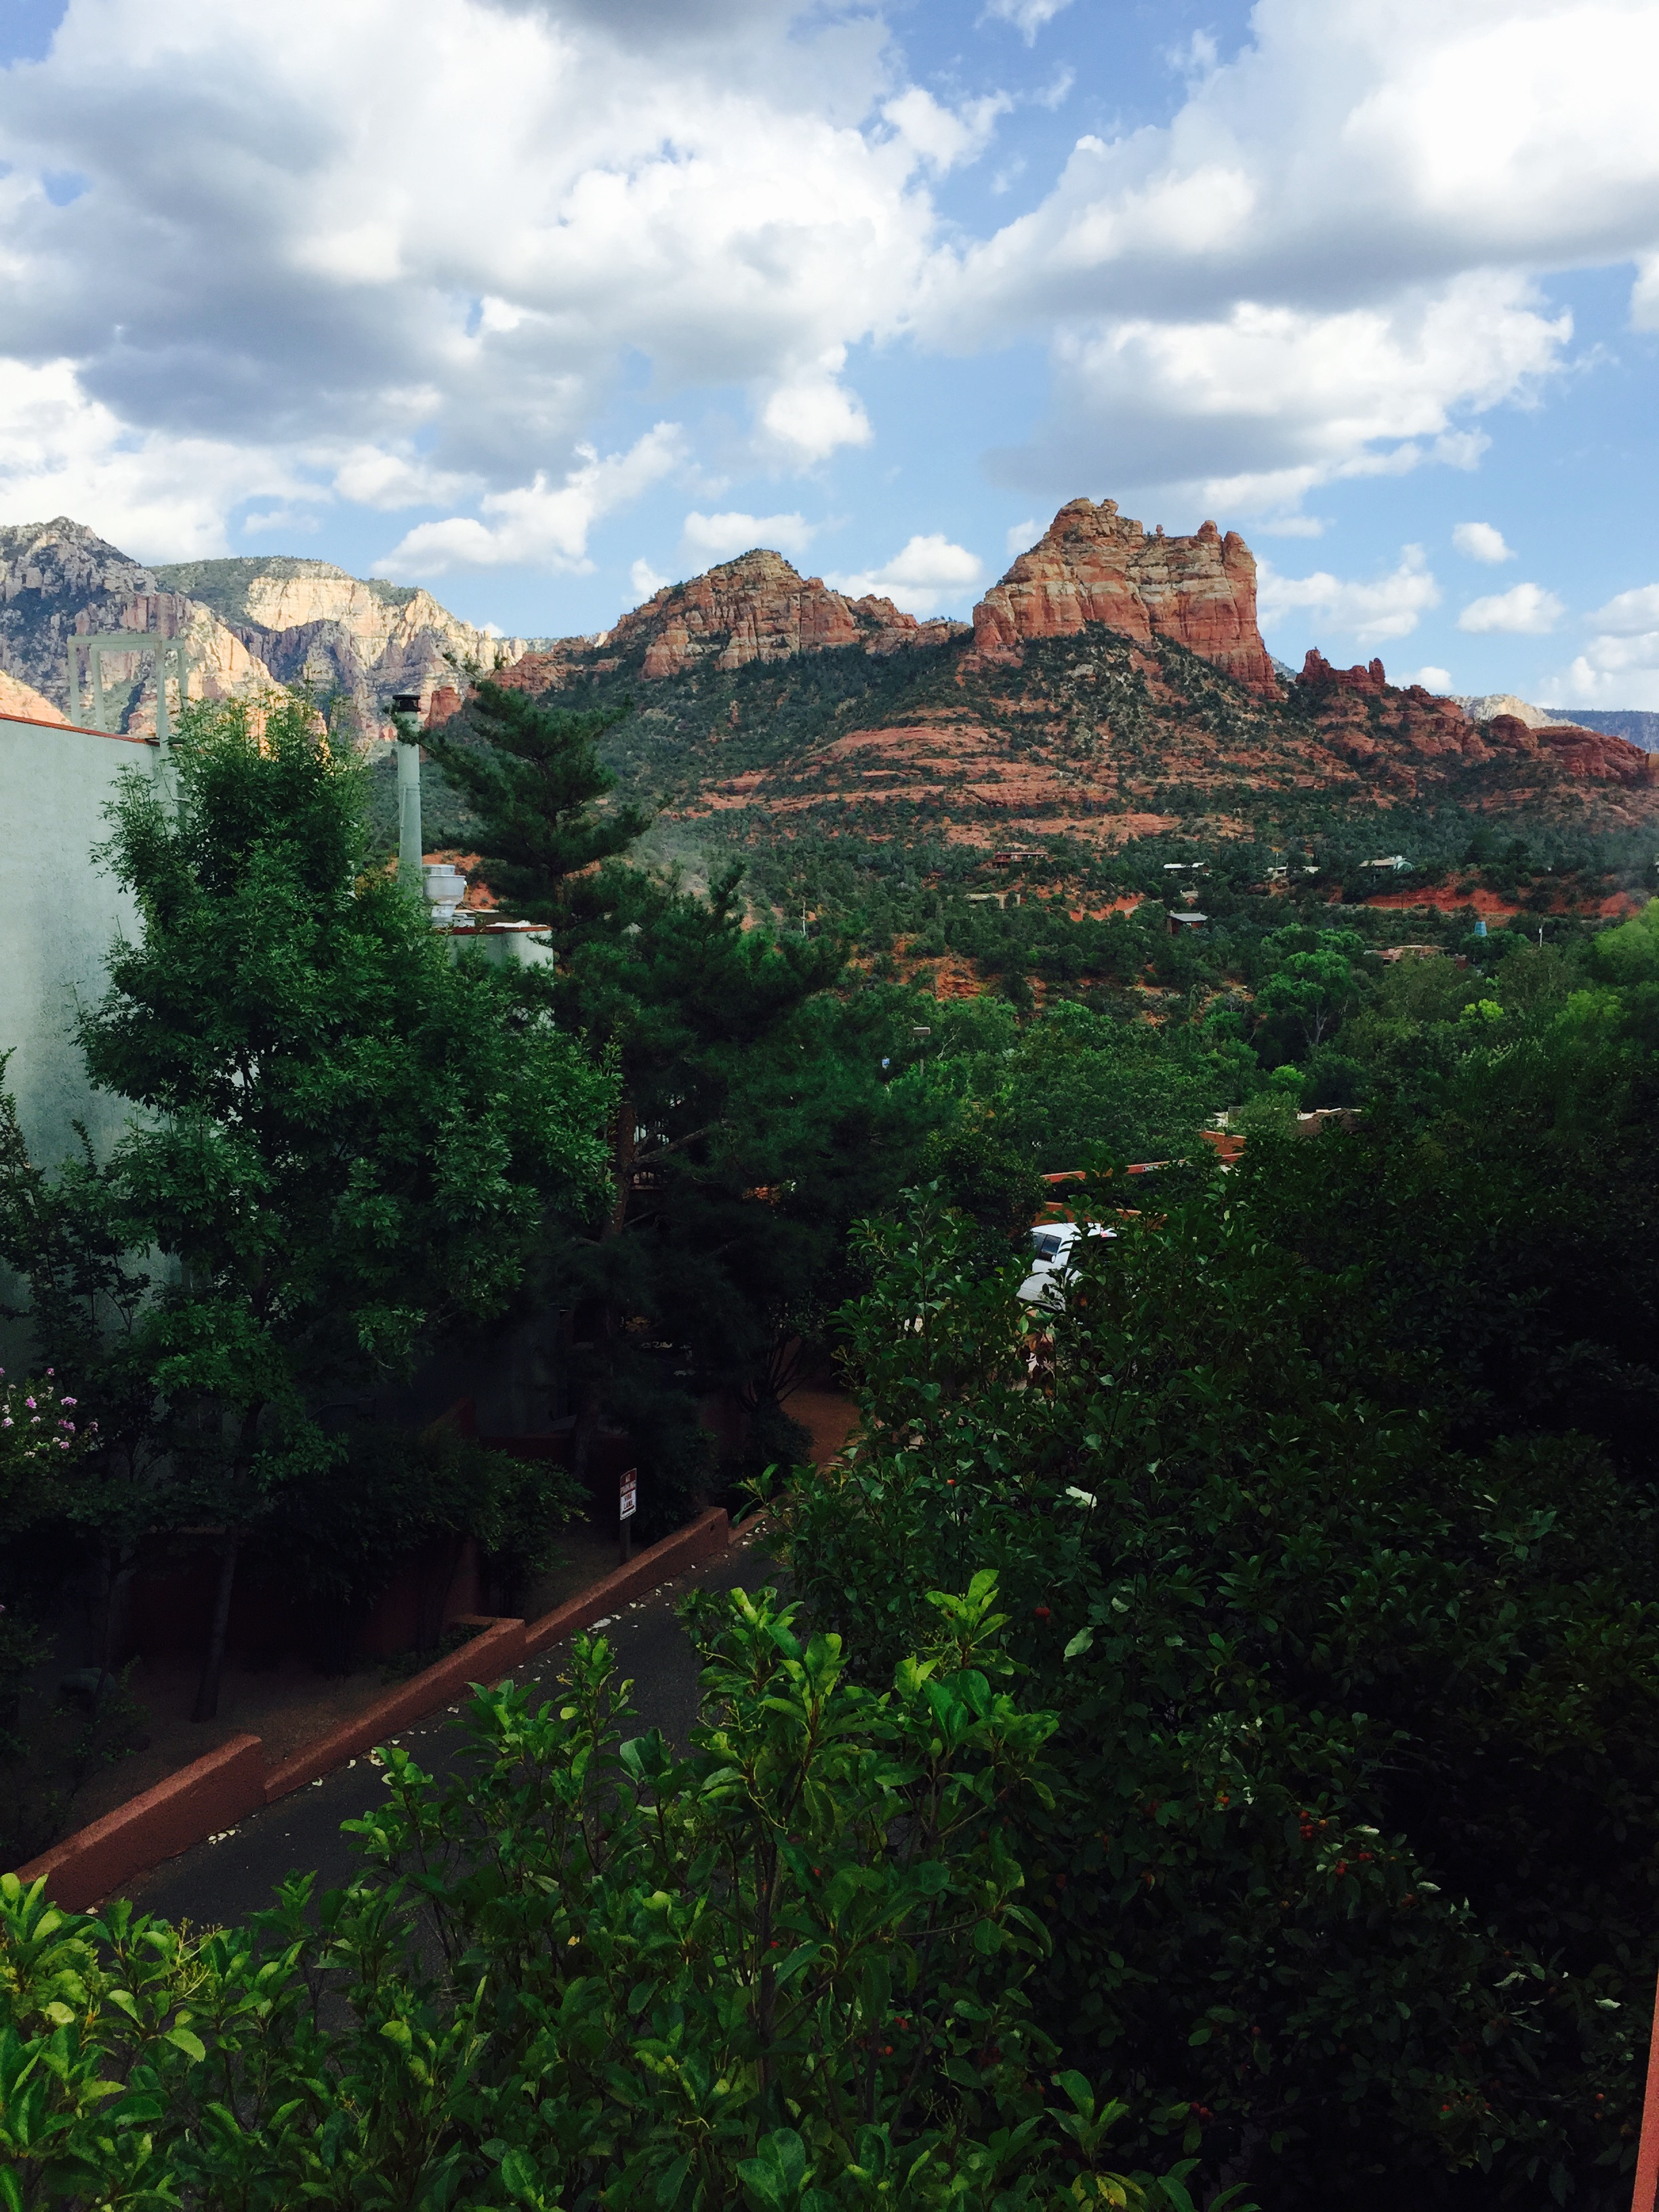 4:44 PM In Sedona…Day 21